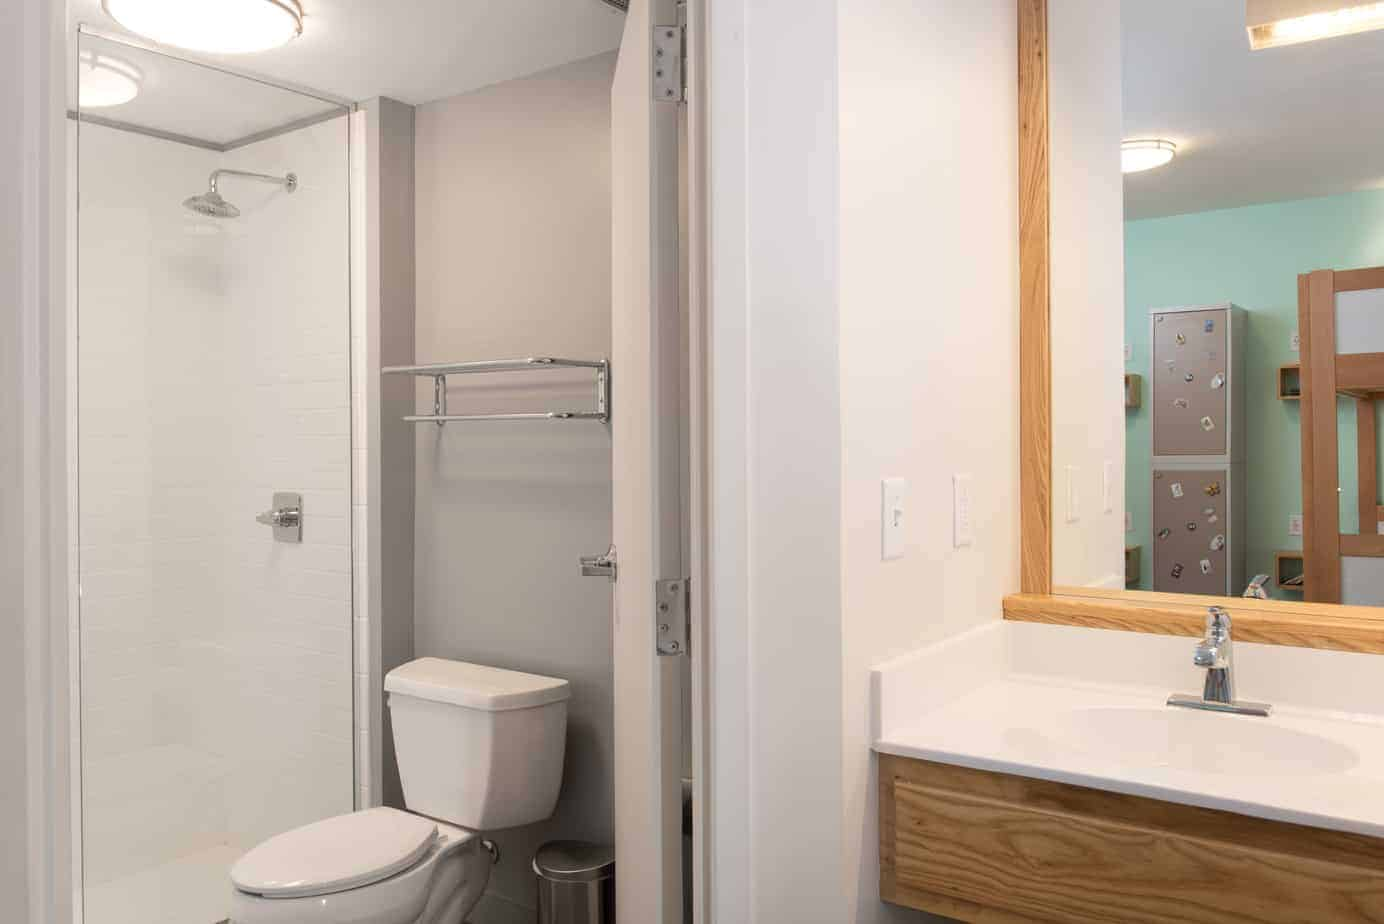 standard-quad-room-7-the-quisby-new-orleans-hostel